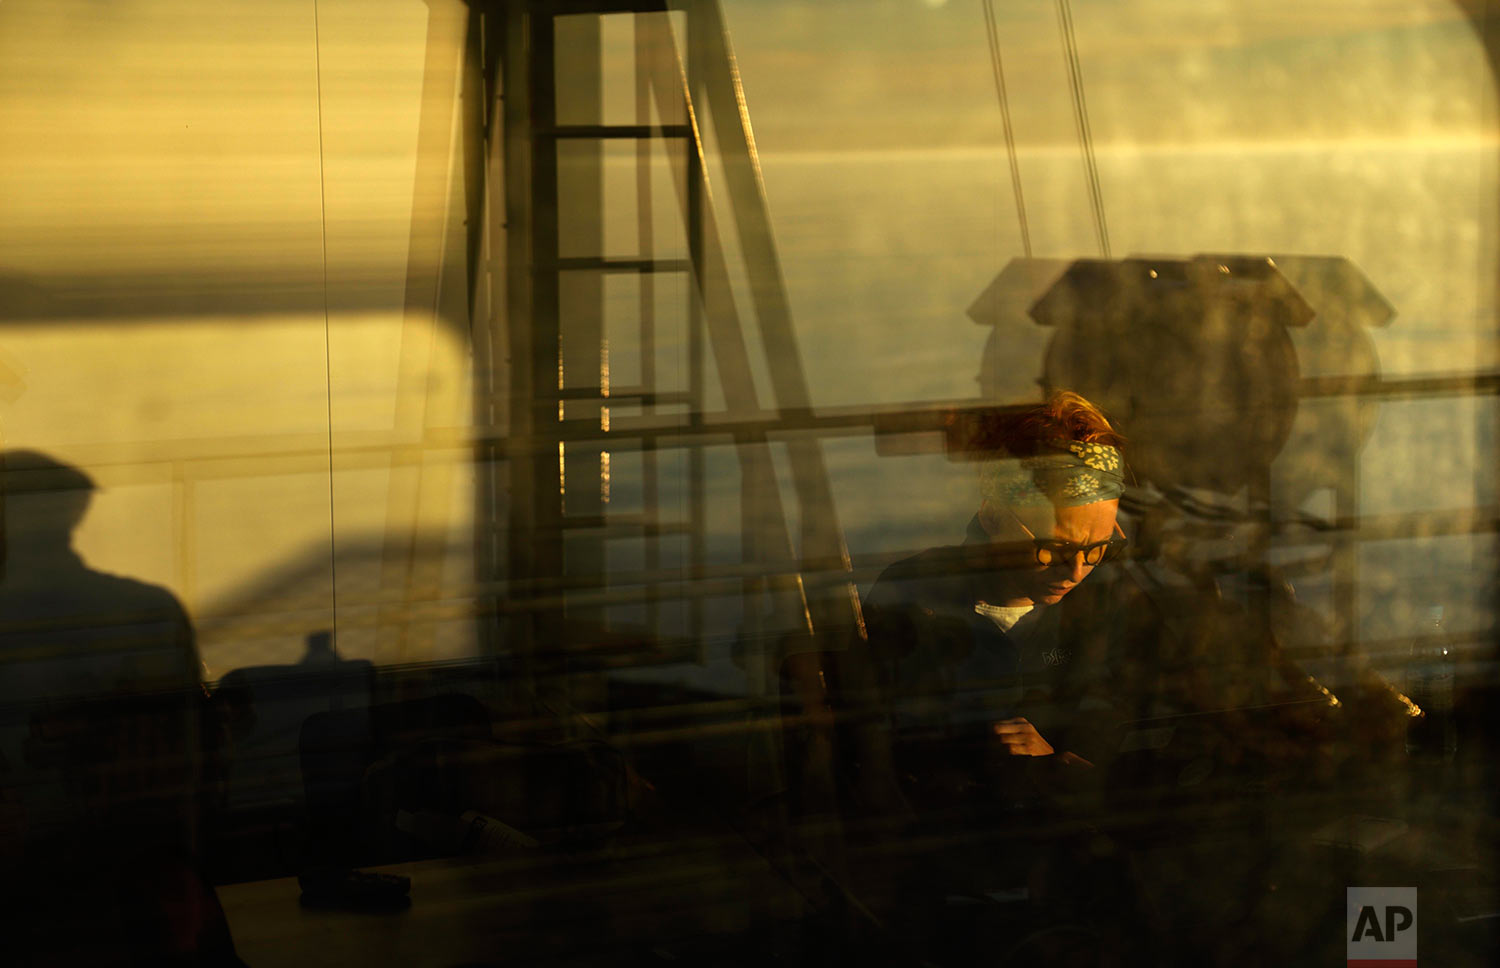 "The sun shines through the window at midnight as researcher Ilona Mettiainen reads in a room overlooking an observation deck on the Finnish icebreaker MSV Nordica as it sails the Bering Sea toward the Canadian Arctic Archipelago to traverse the Northwest Passage, early Friday, July 14, 2017. Mettiainen is working on her doctorate in sociology and is exploring how climate change affects Arctic communities. Mettiainen grew up in Rovanaiemi, Finland, close to the Arctic circle. ""When I was a kid I couldn't really sleep when there was daylight in the evening,"" said Mettiainen. ""I'm used to it now since my childhood so it's a home thing for me. It feels like home."" (AP Photo/David Goldman)"